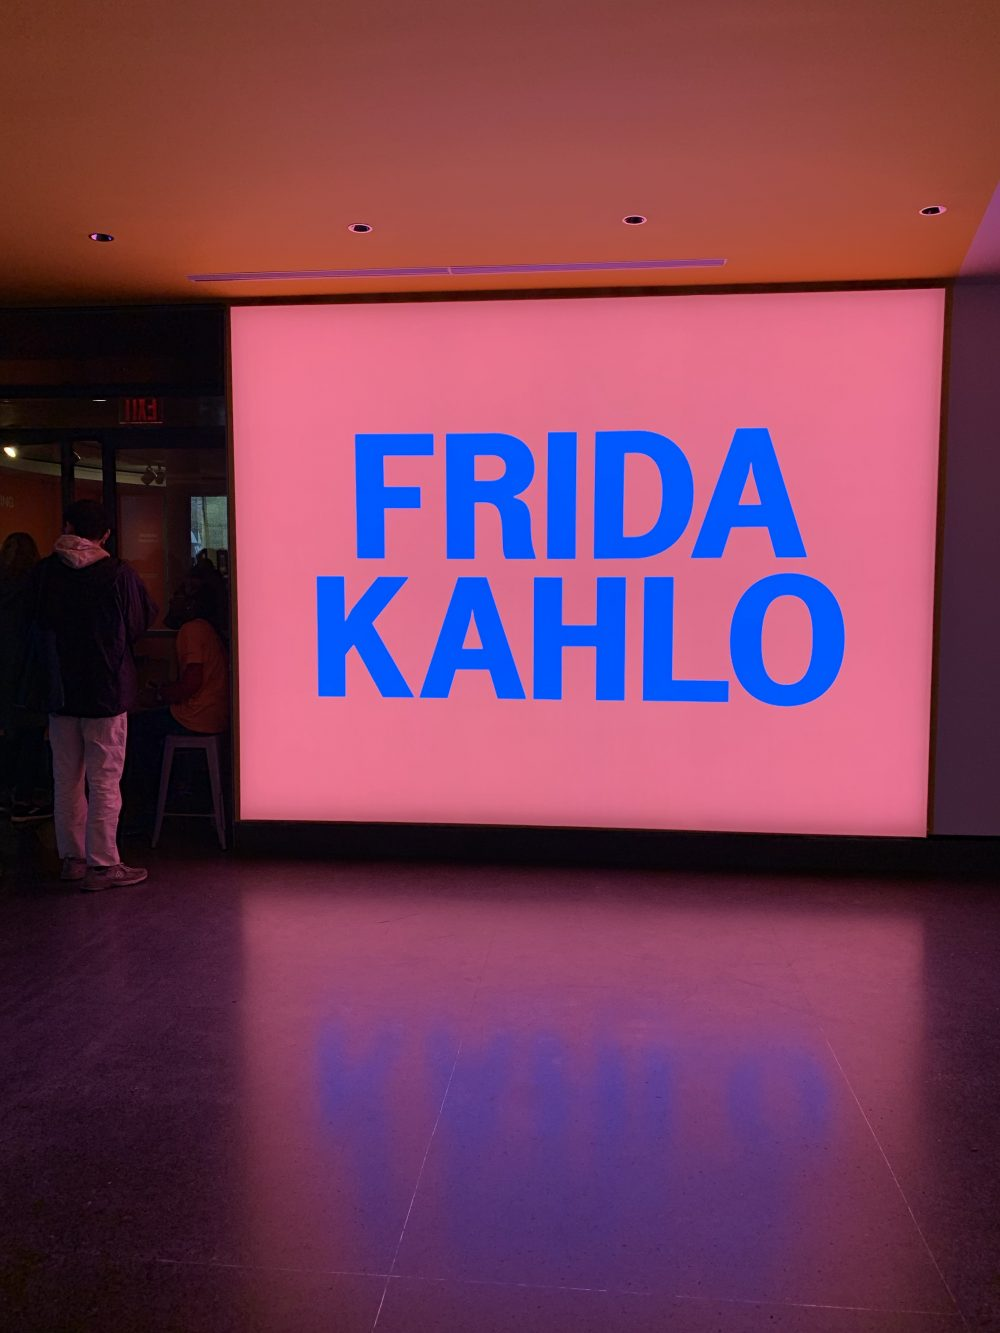 Appearances Can Be Deceiving: Frida Kahlo Under The Influence - THE